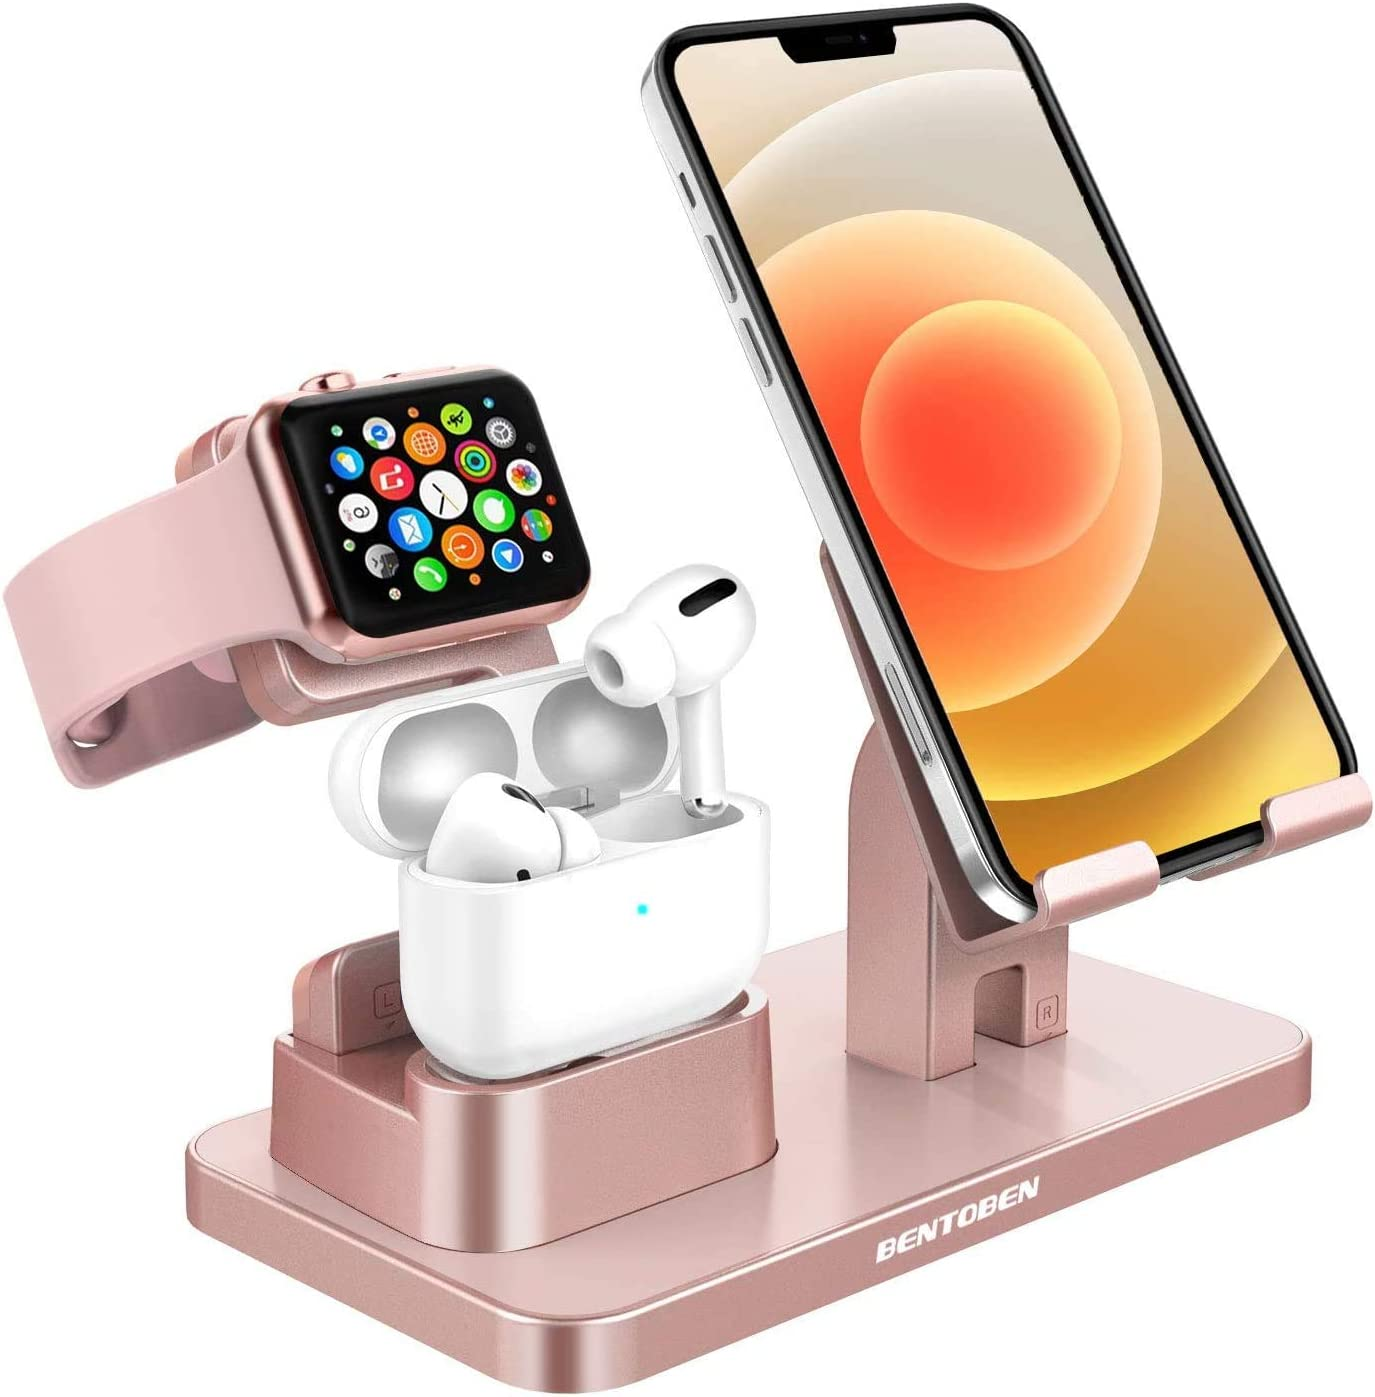 GaoBao Charging Stand for Apple iWatch 6/SE/5/4/3/2/1 Airpods Pro/2/1,3 in 1 Charging Dock Station for iPhone 12 Mini 11 Pro XS MAX X XR 8 7 6s Plus SE 2020 Samsung S20 S10 Plus iPad Tablet,Rose Gold